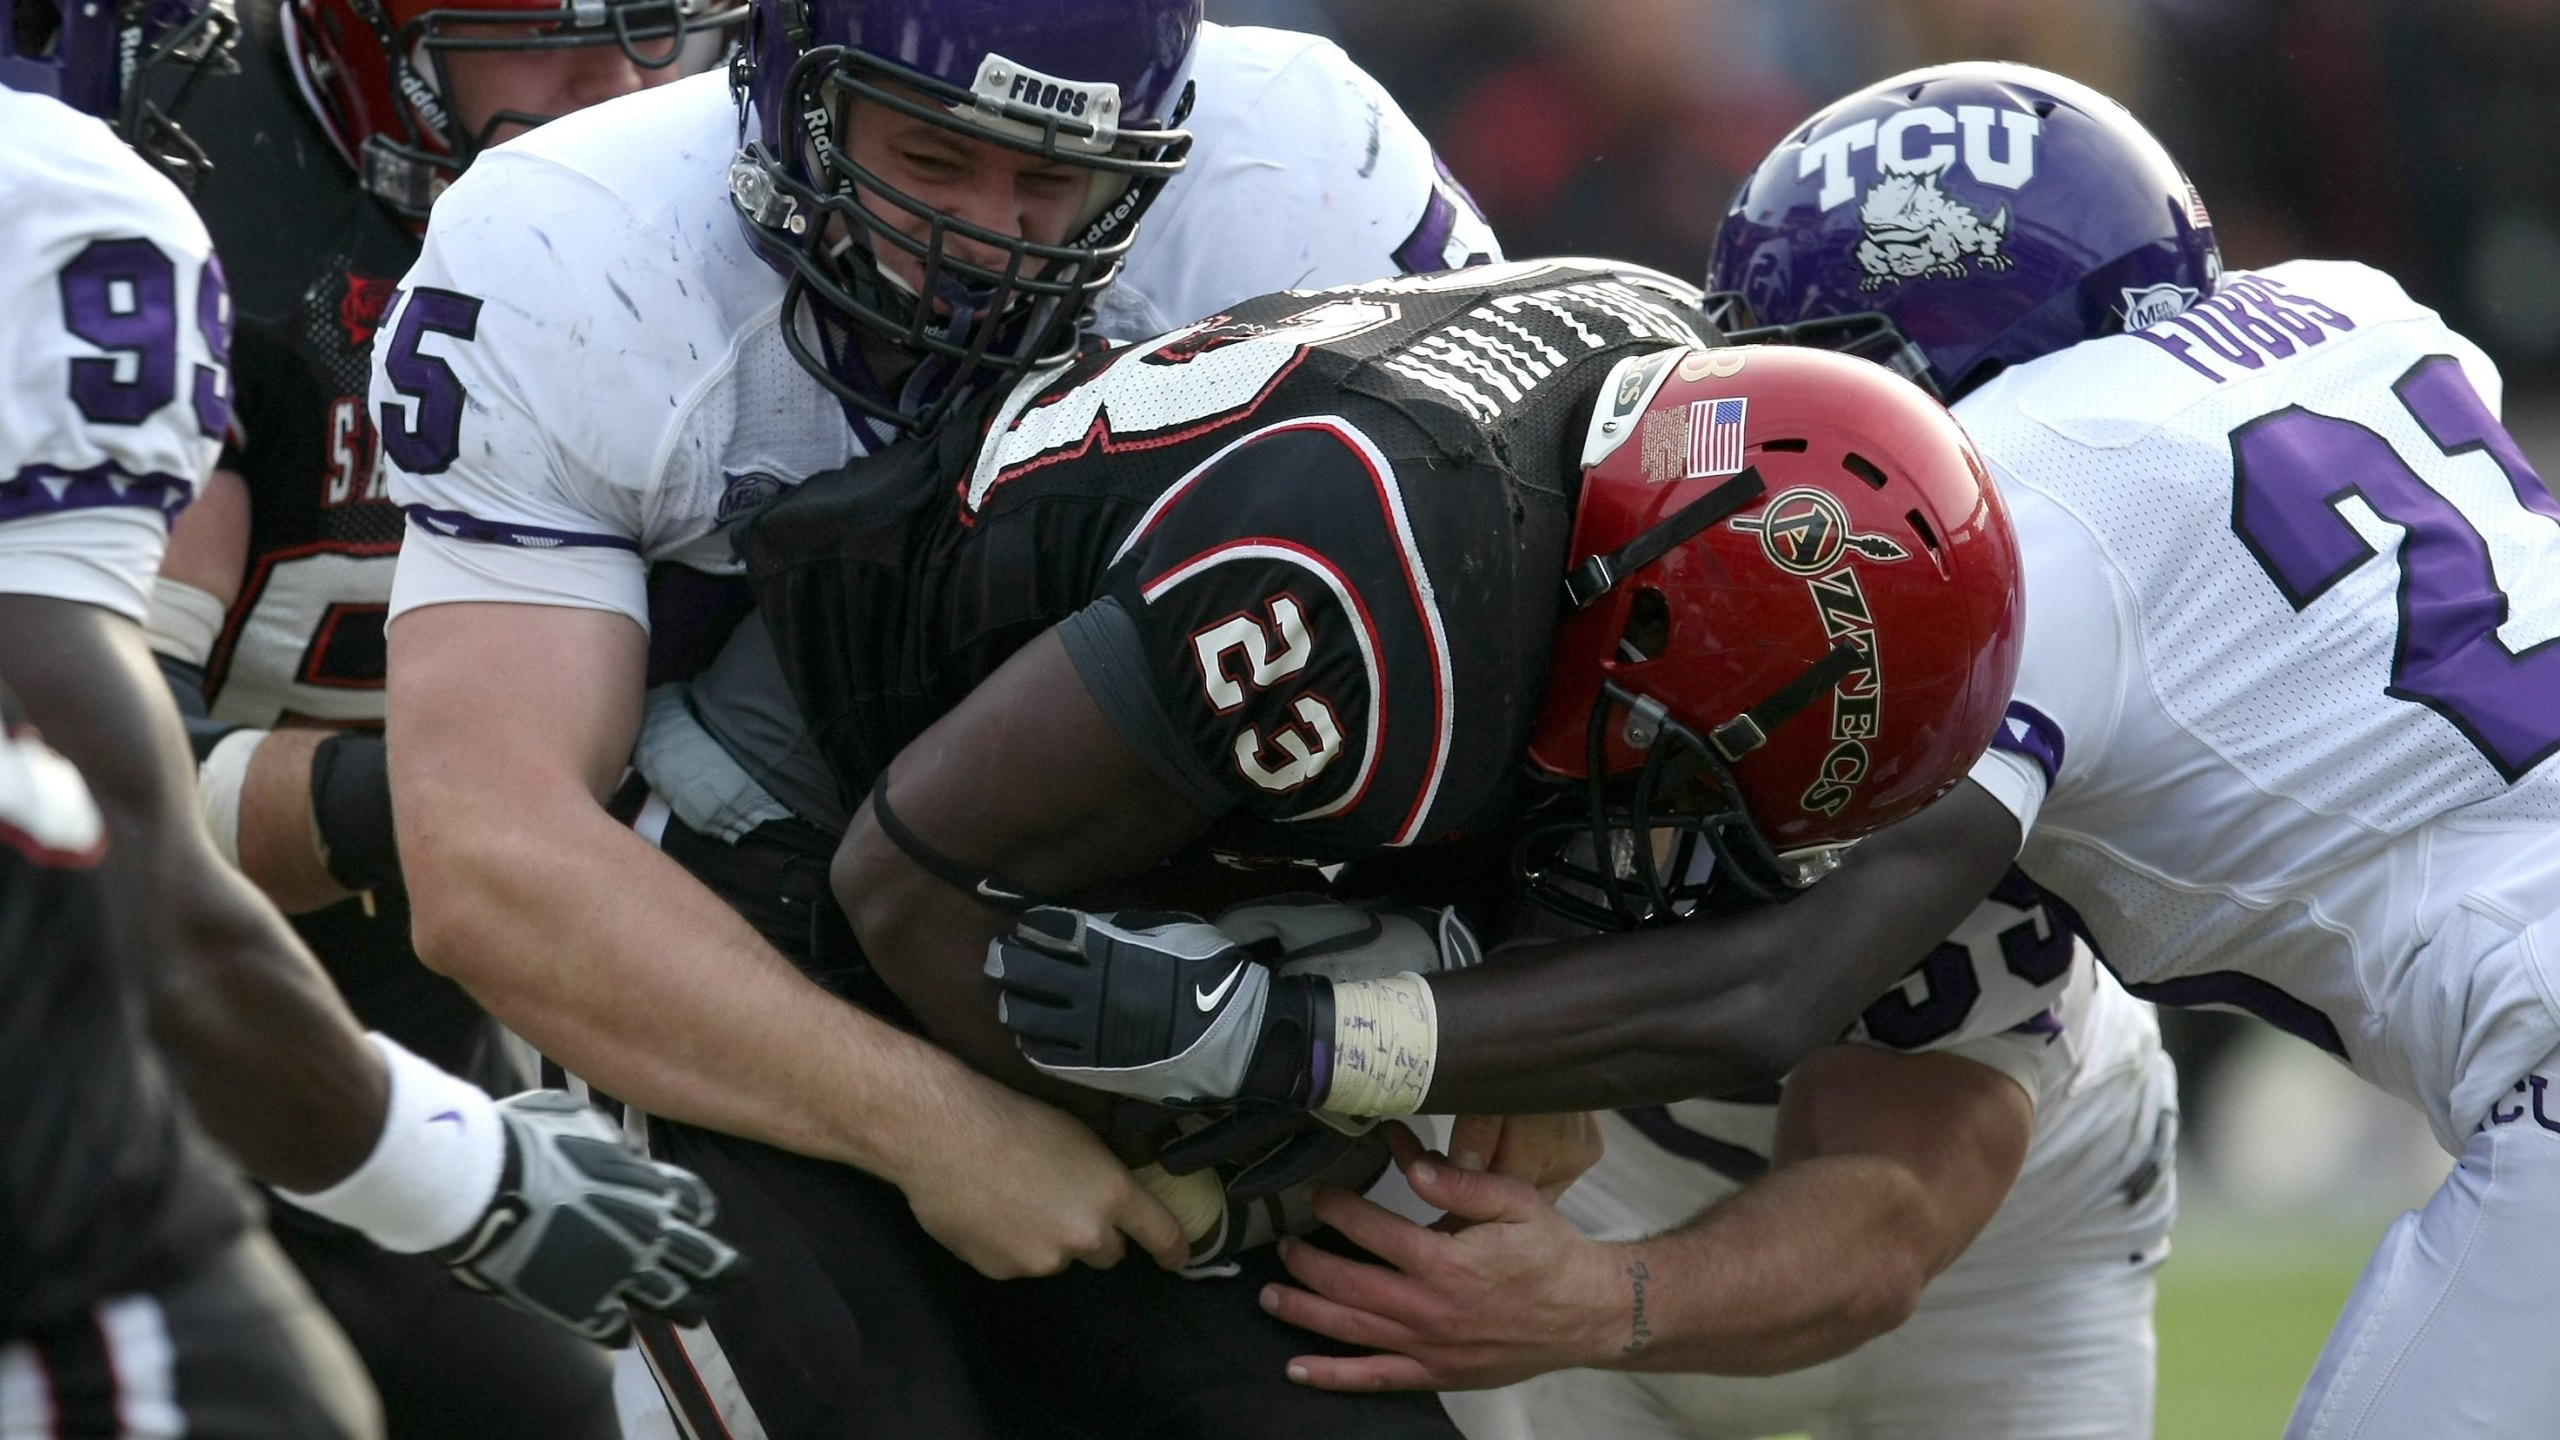 Defensive lineman D.J. Yendrey #55 of the Texas Christian University Horned Frogs tackles running back Brandon Sullivan #23 of the San Diego State Aztecs on November 7, 2009, at Qualcomm Stadium in San Diego, California. (Stephen Dunn/Getty Images)